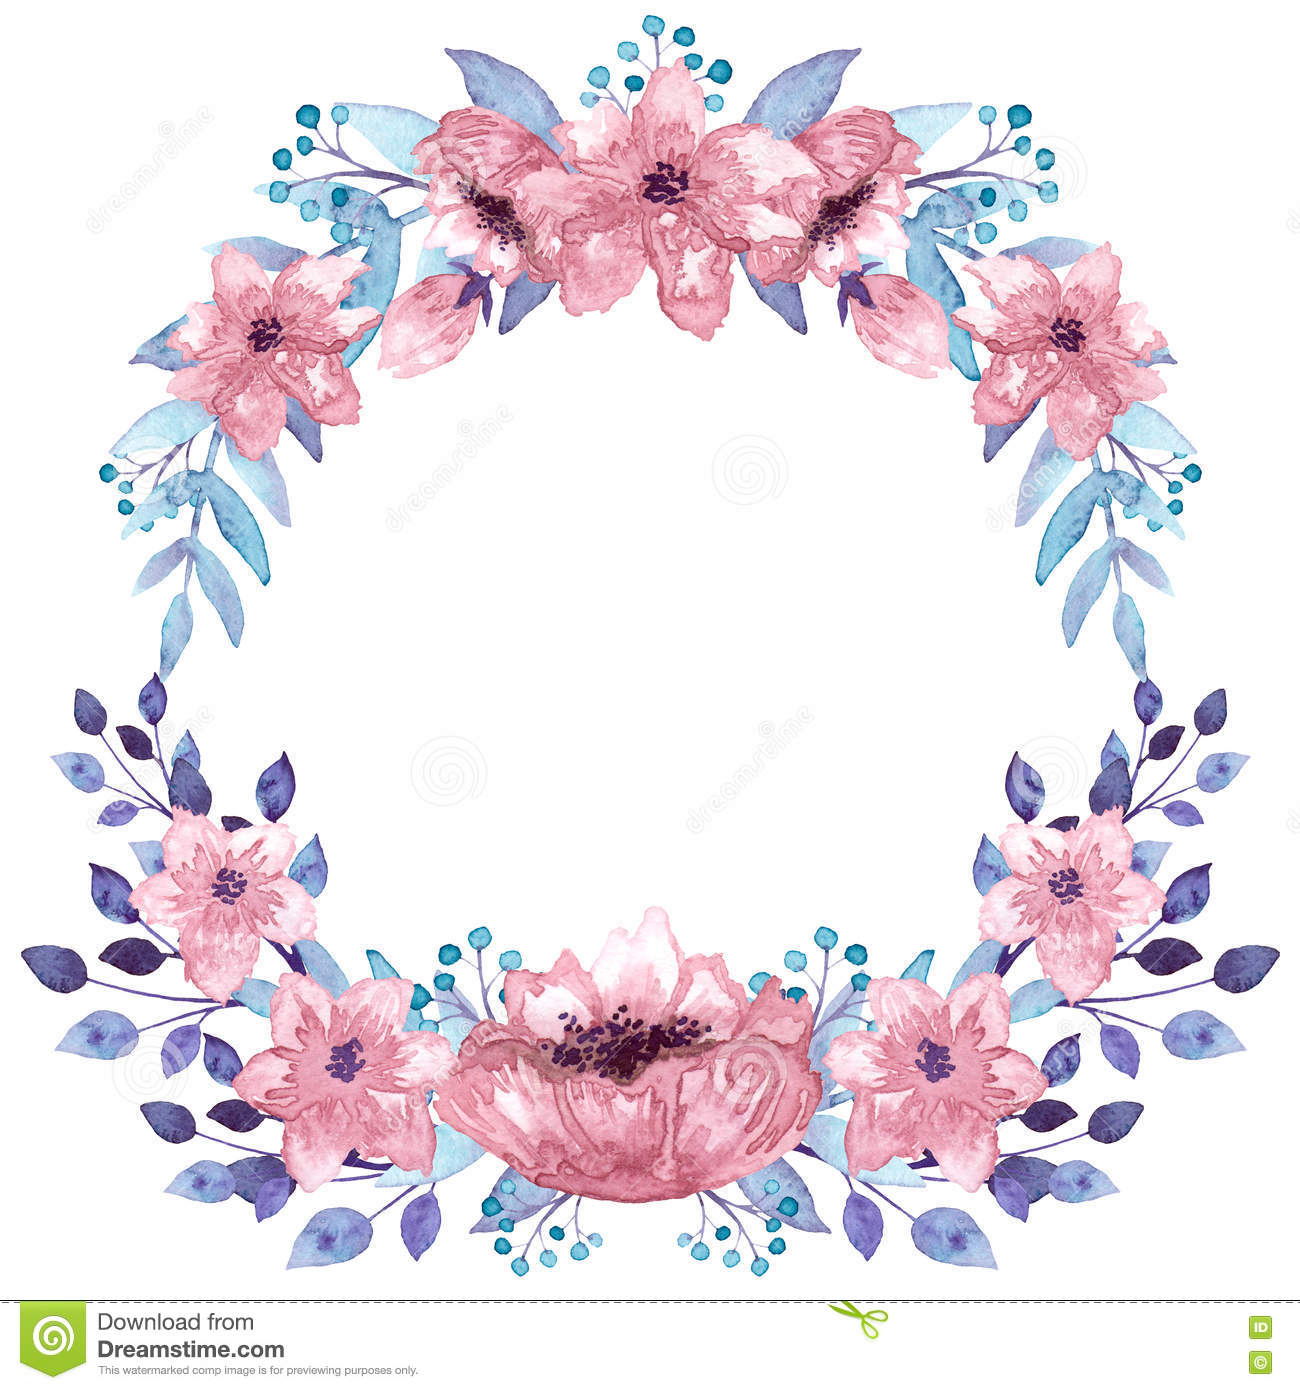 Wreath With Watercolor Pink Flowers And Light Blue Leaves Stock